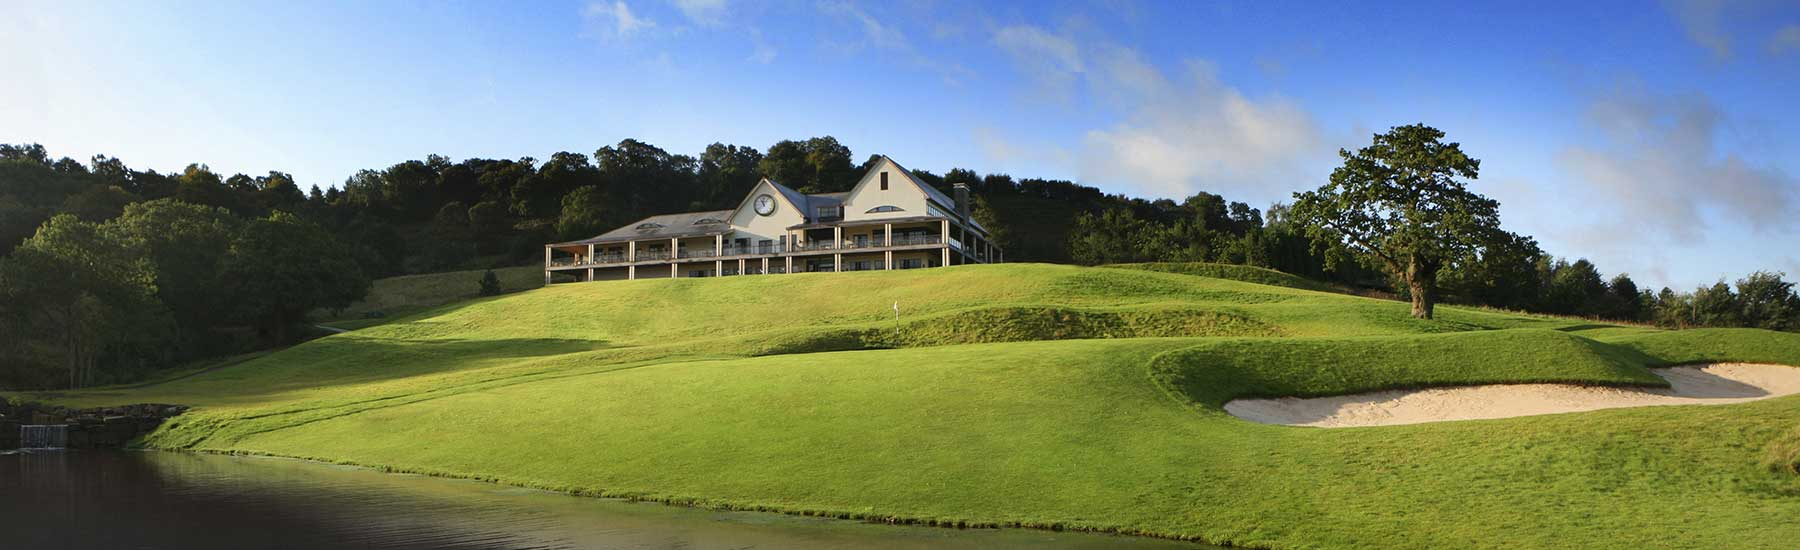 2010 Ryder Cup: The Celtic Manor Revisited